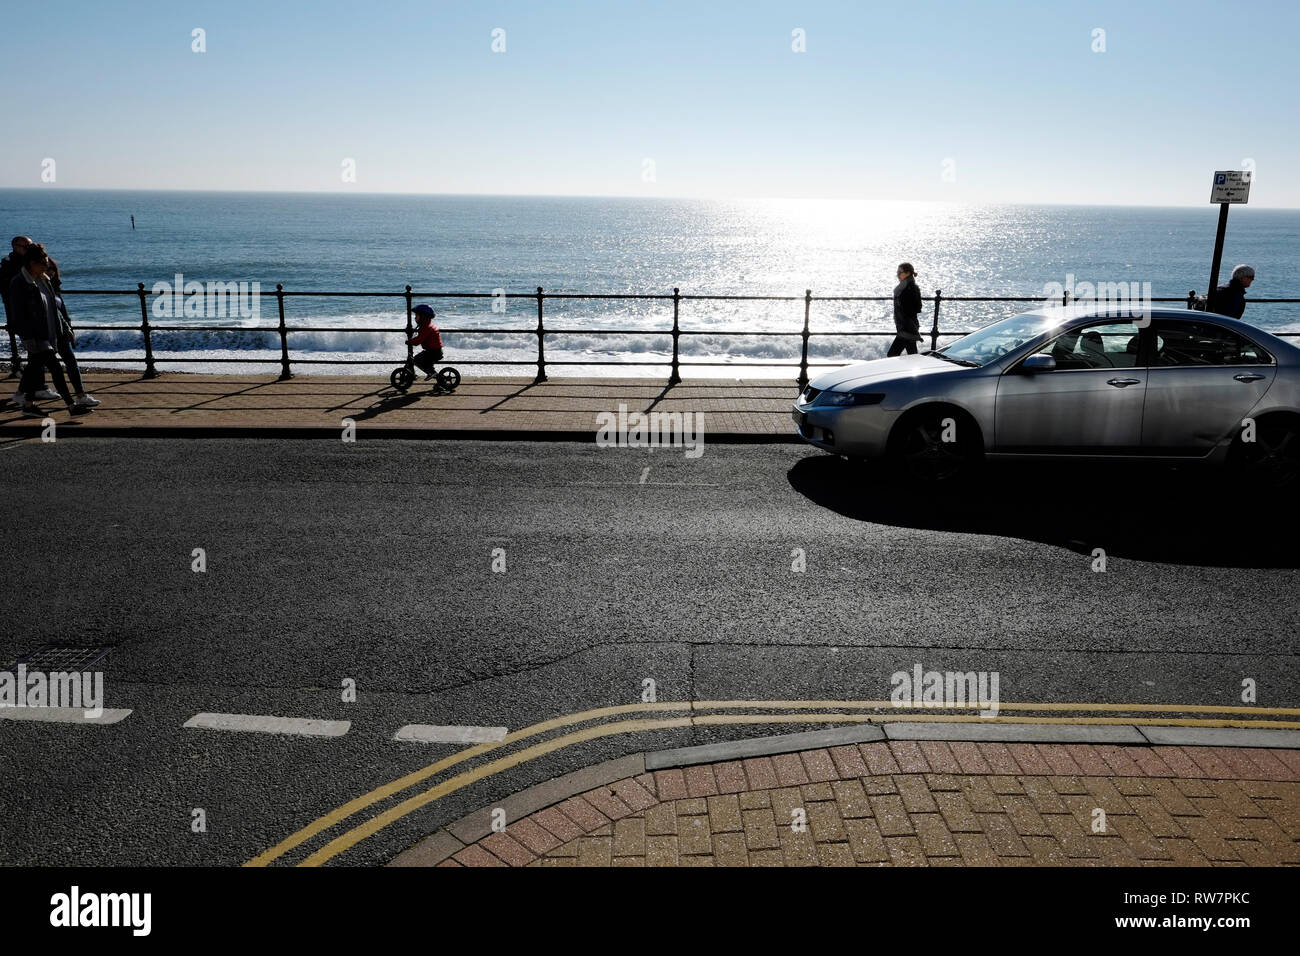 Adults and children, one riding a bicycle, promenade along the seafront in winter, at Ventnor, Isle of Wight, UK. - Stock Image